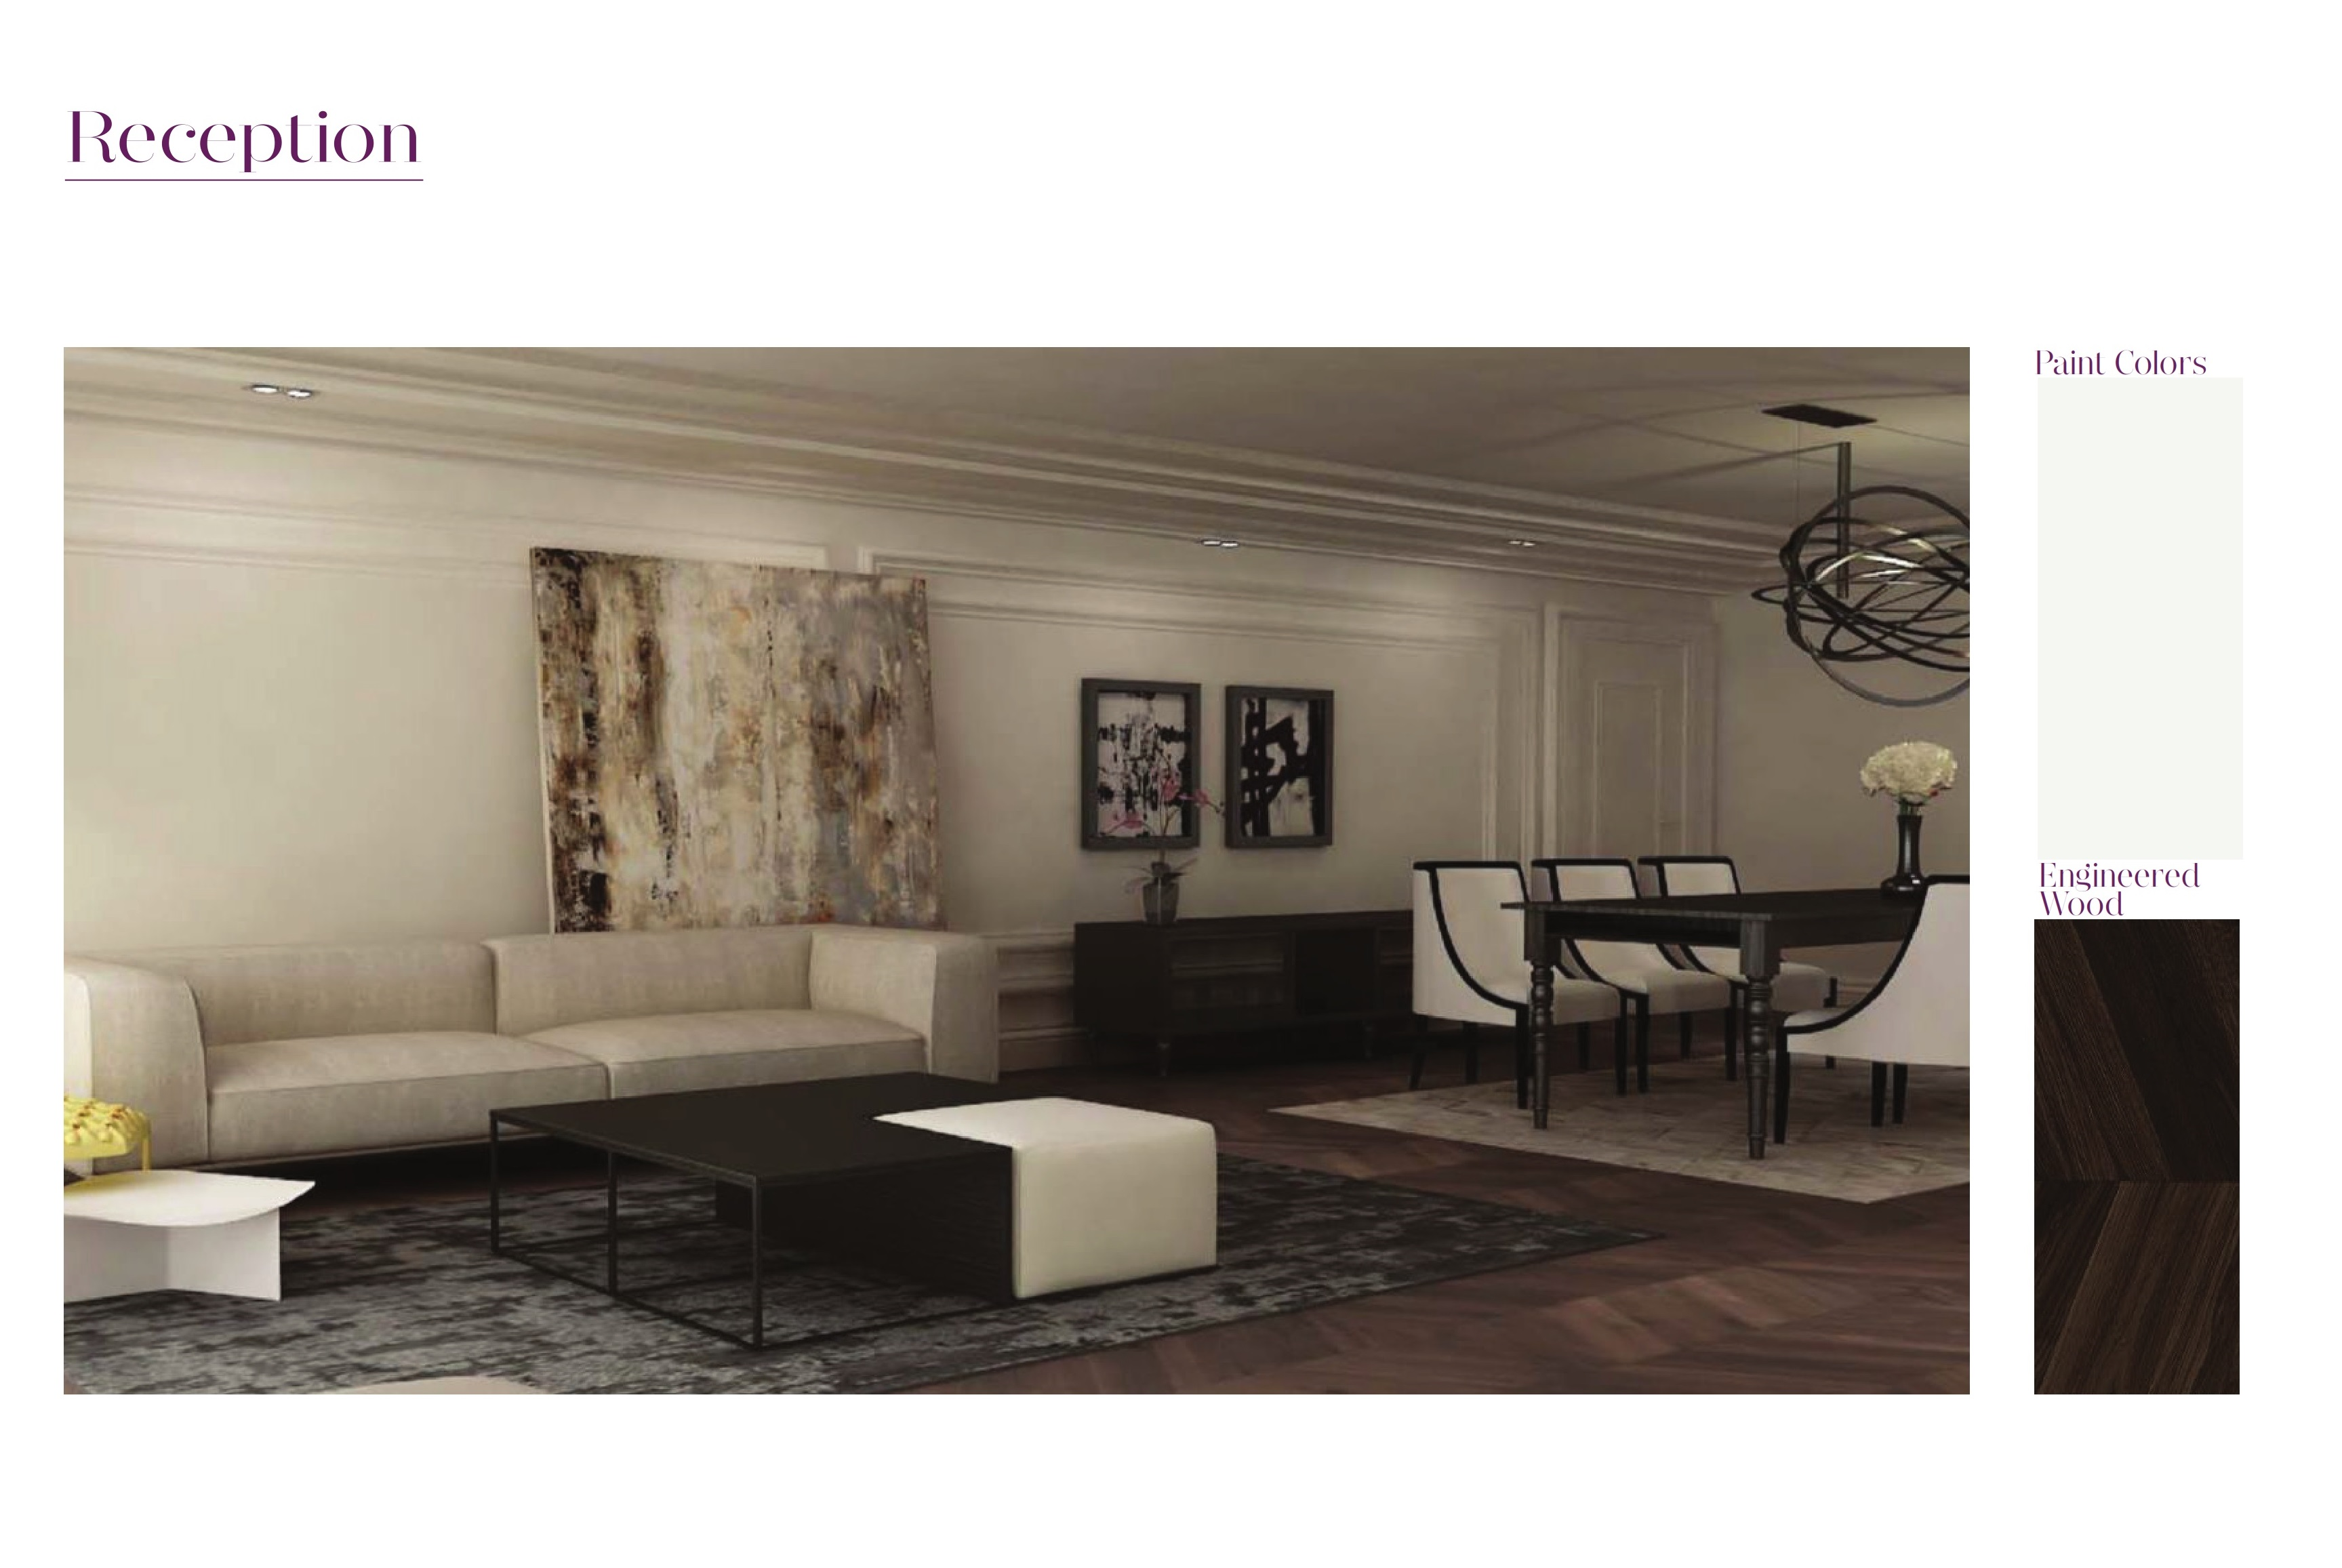 615-penthouse-2-bedrooms-a